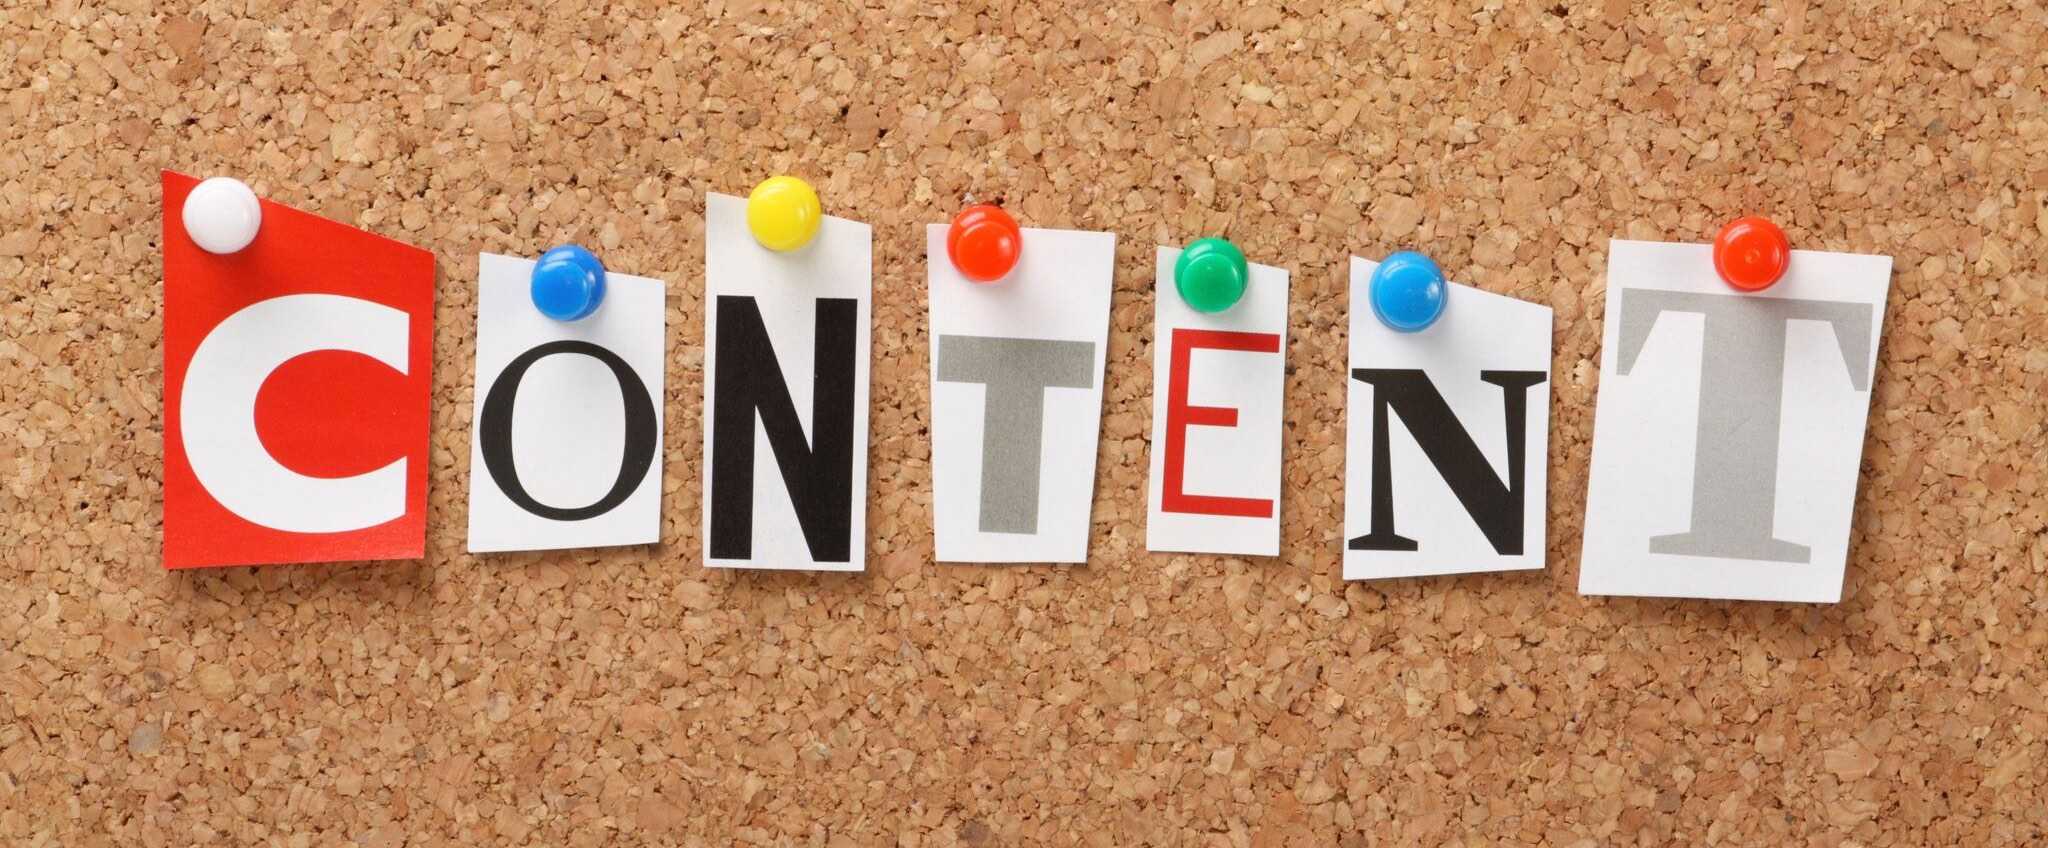 Content-Marketing-Tipps